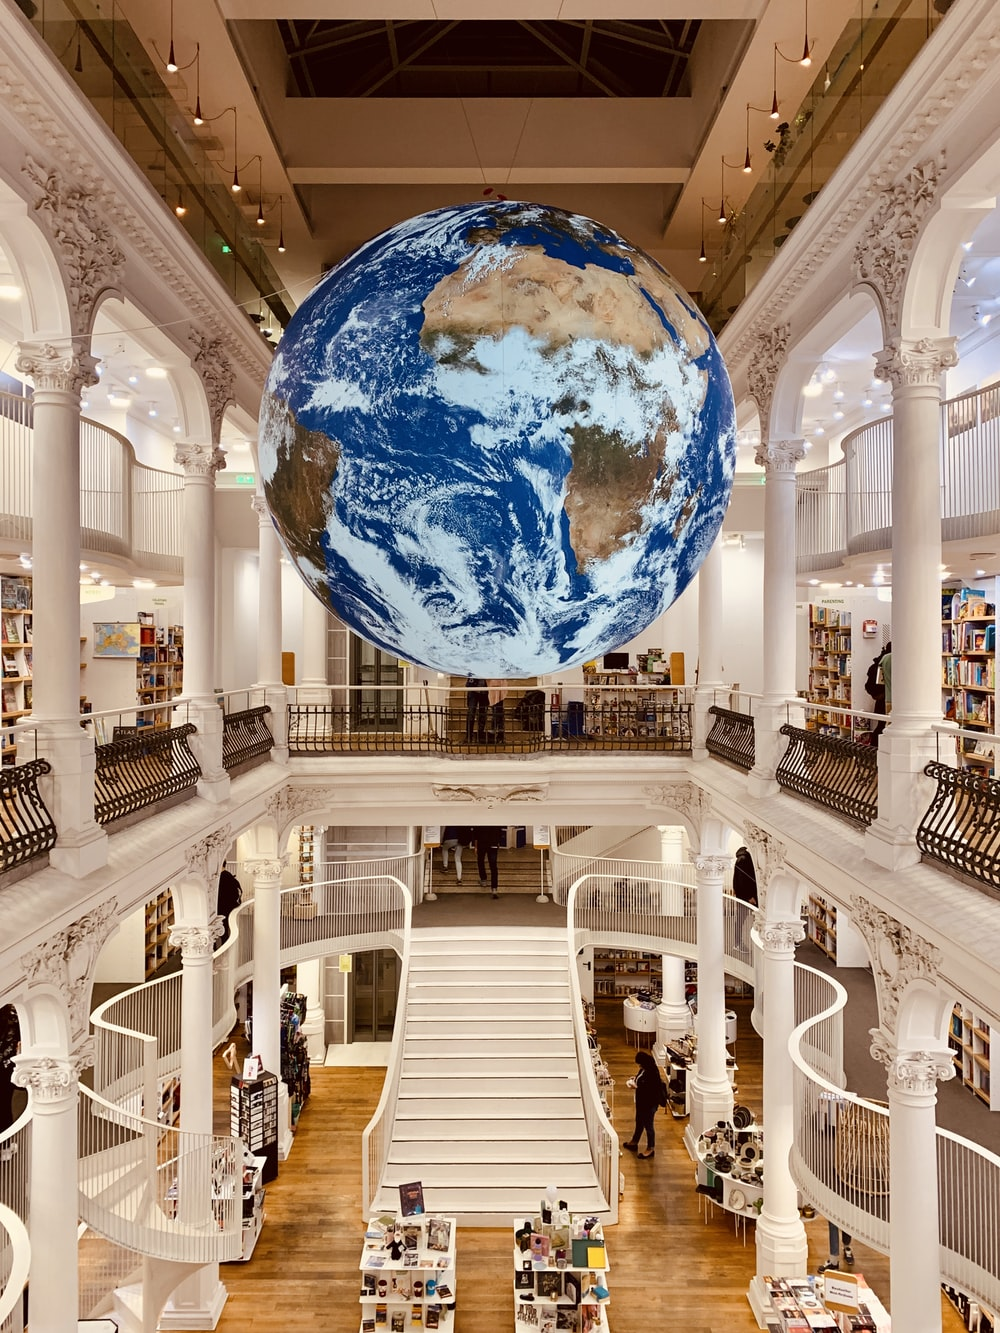 earth hanging decor inside library